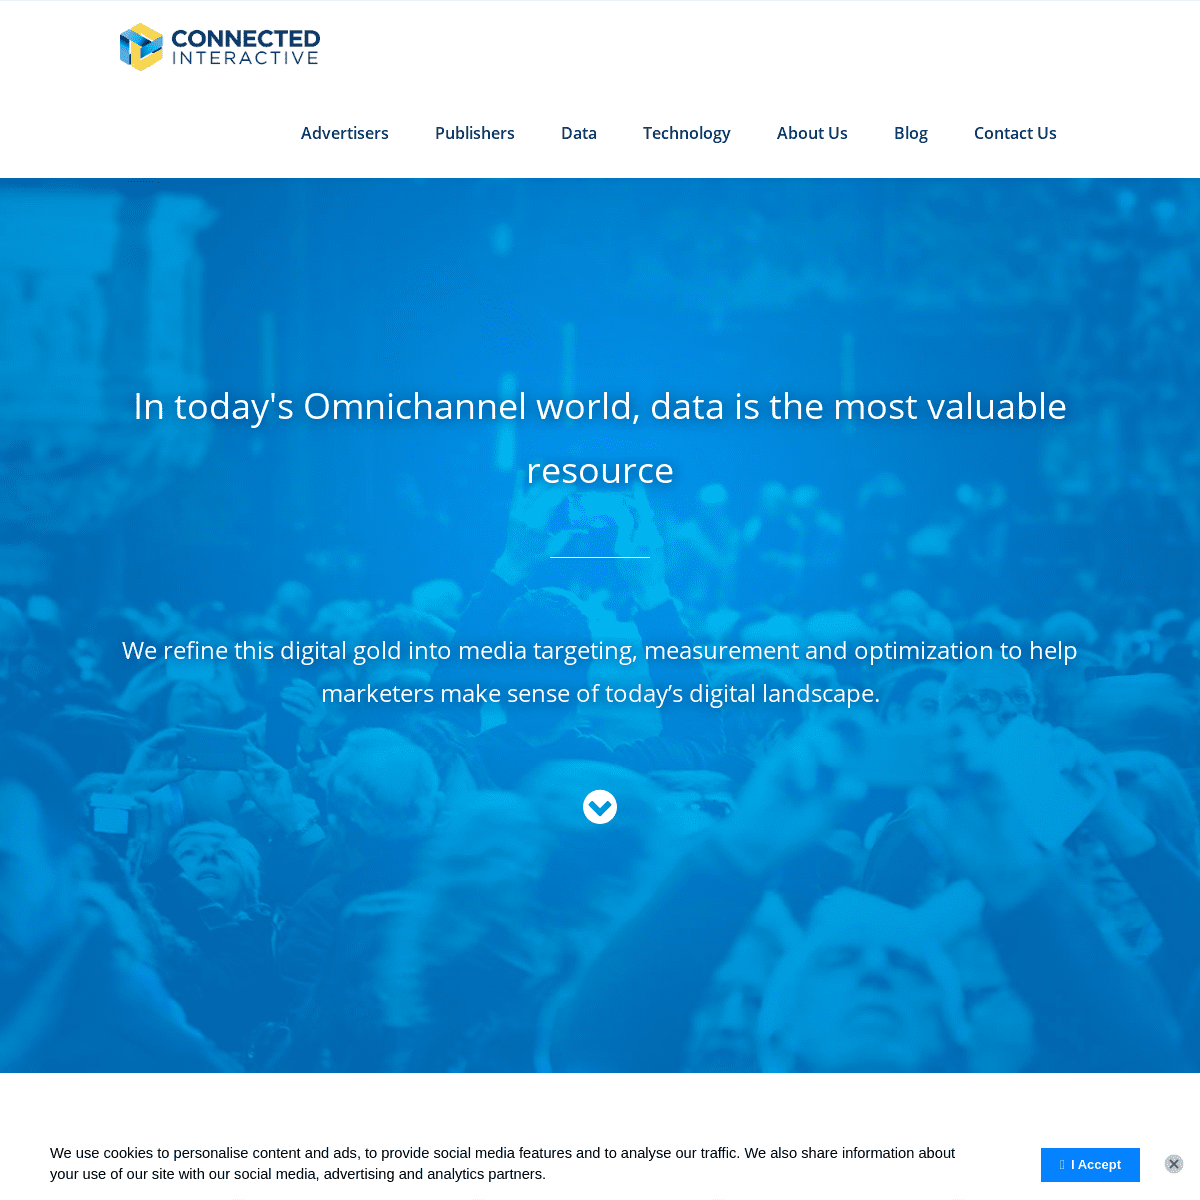 ArchiveBay.com - connectedinteractive.com - Connected Interactive - Specializing in Programmatic and Performance Advertising